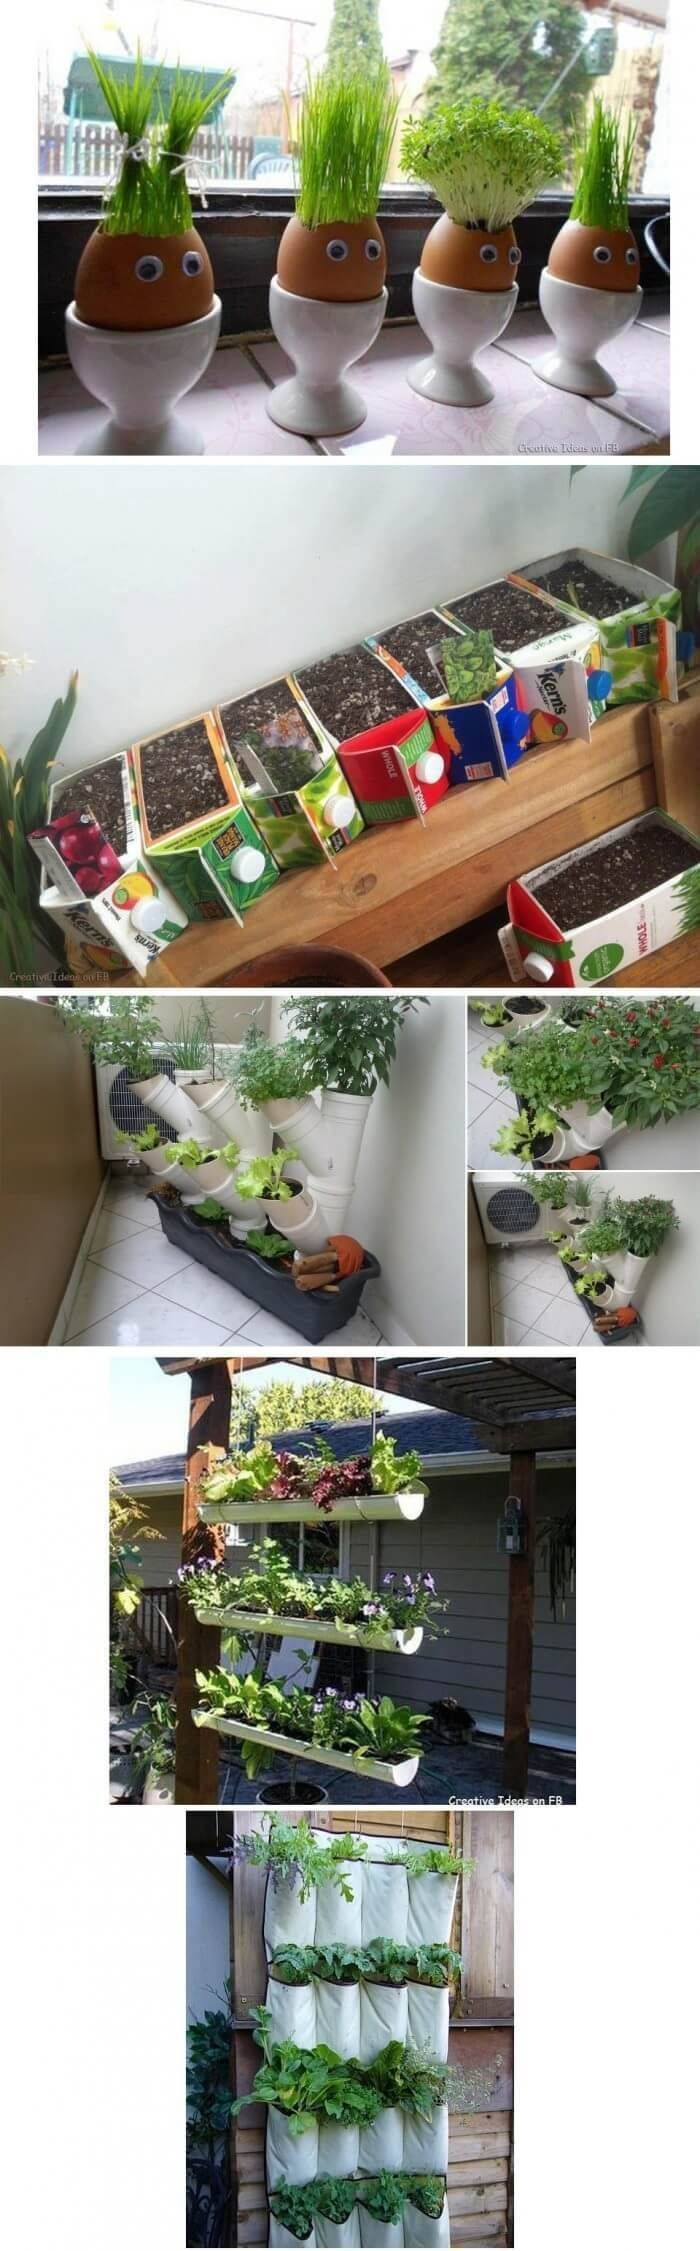 11+ Creative Garden Ideas In Balcony Ideas